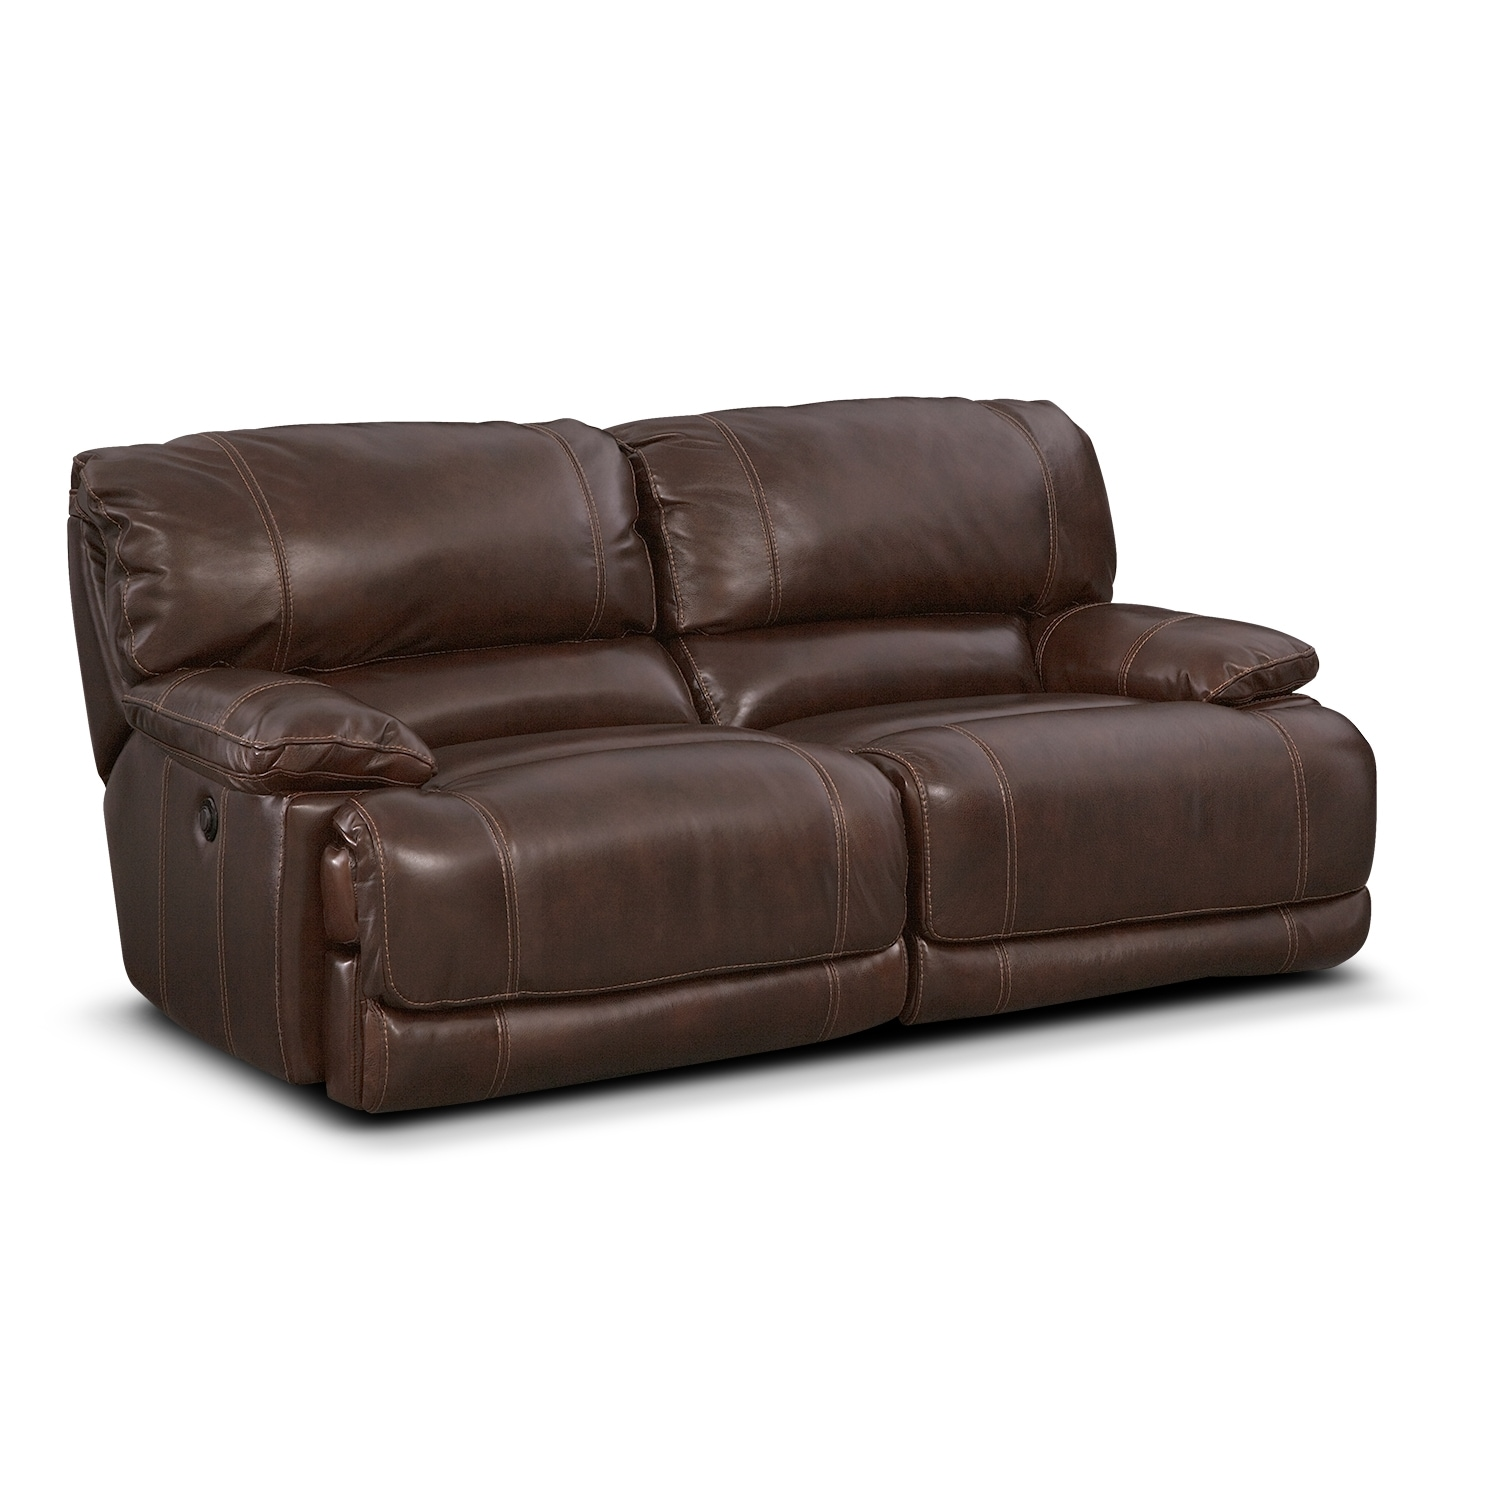 St. Malo Power Reclining Sofa   Brown